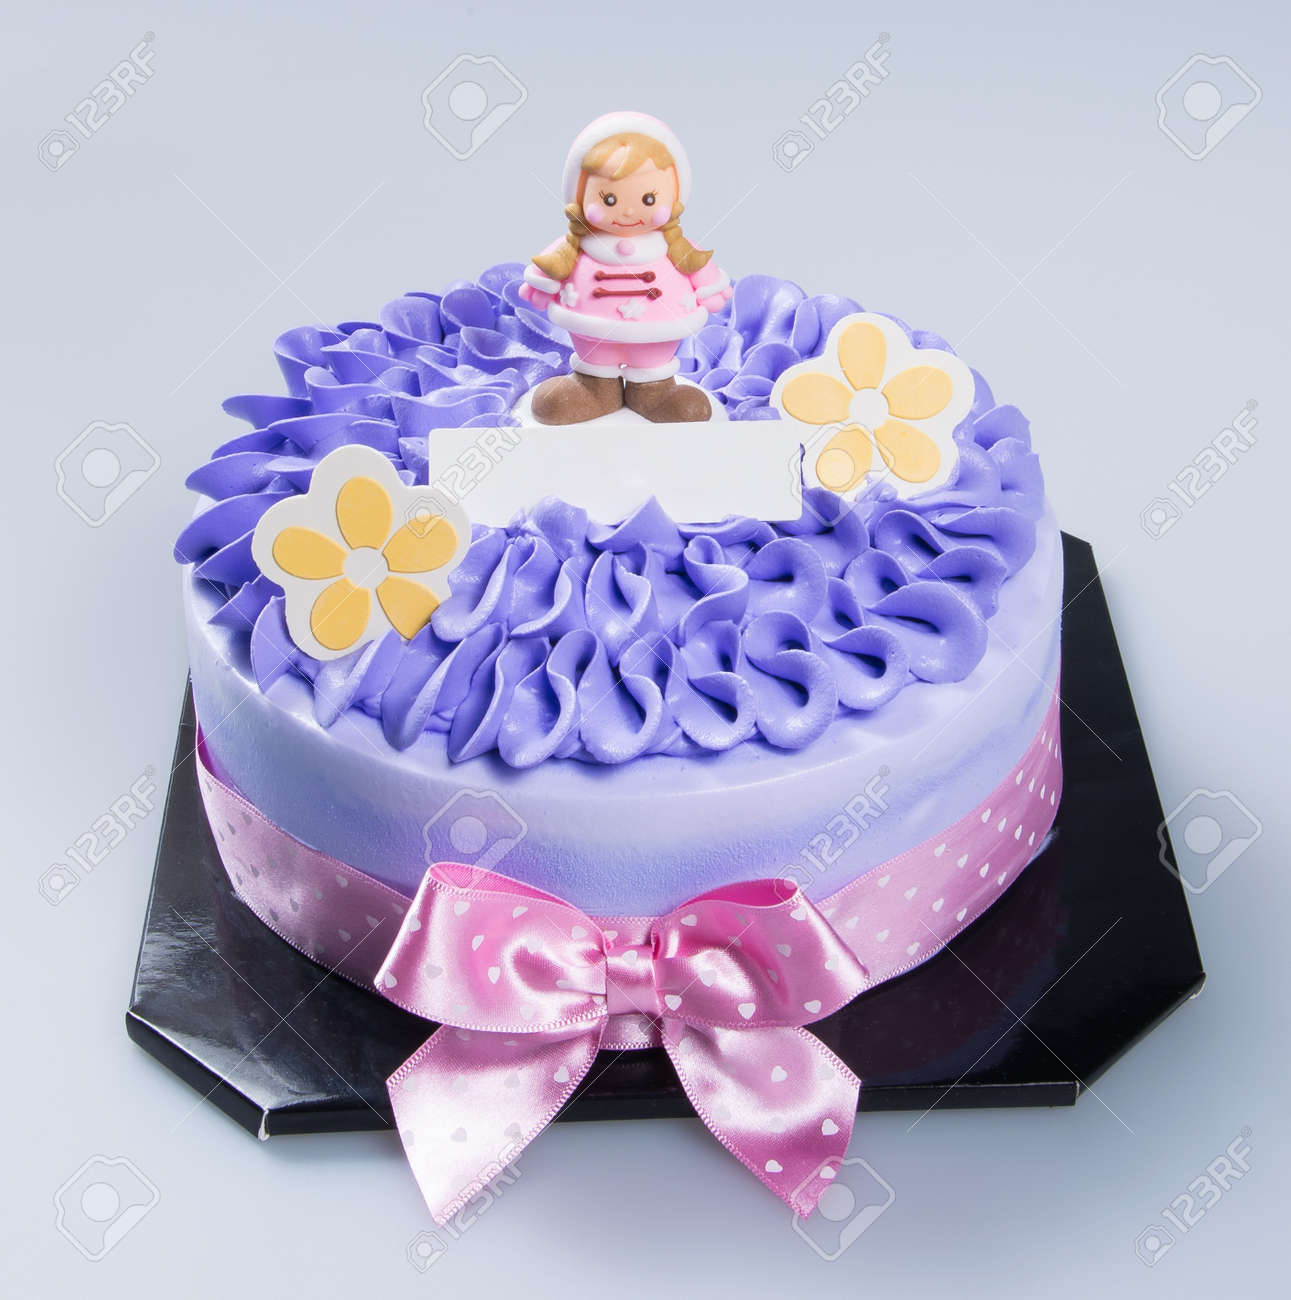 Cake Happy Mother Day Cake On A Background Stock Photo 78880882